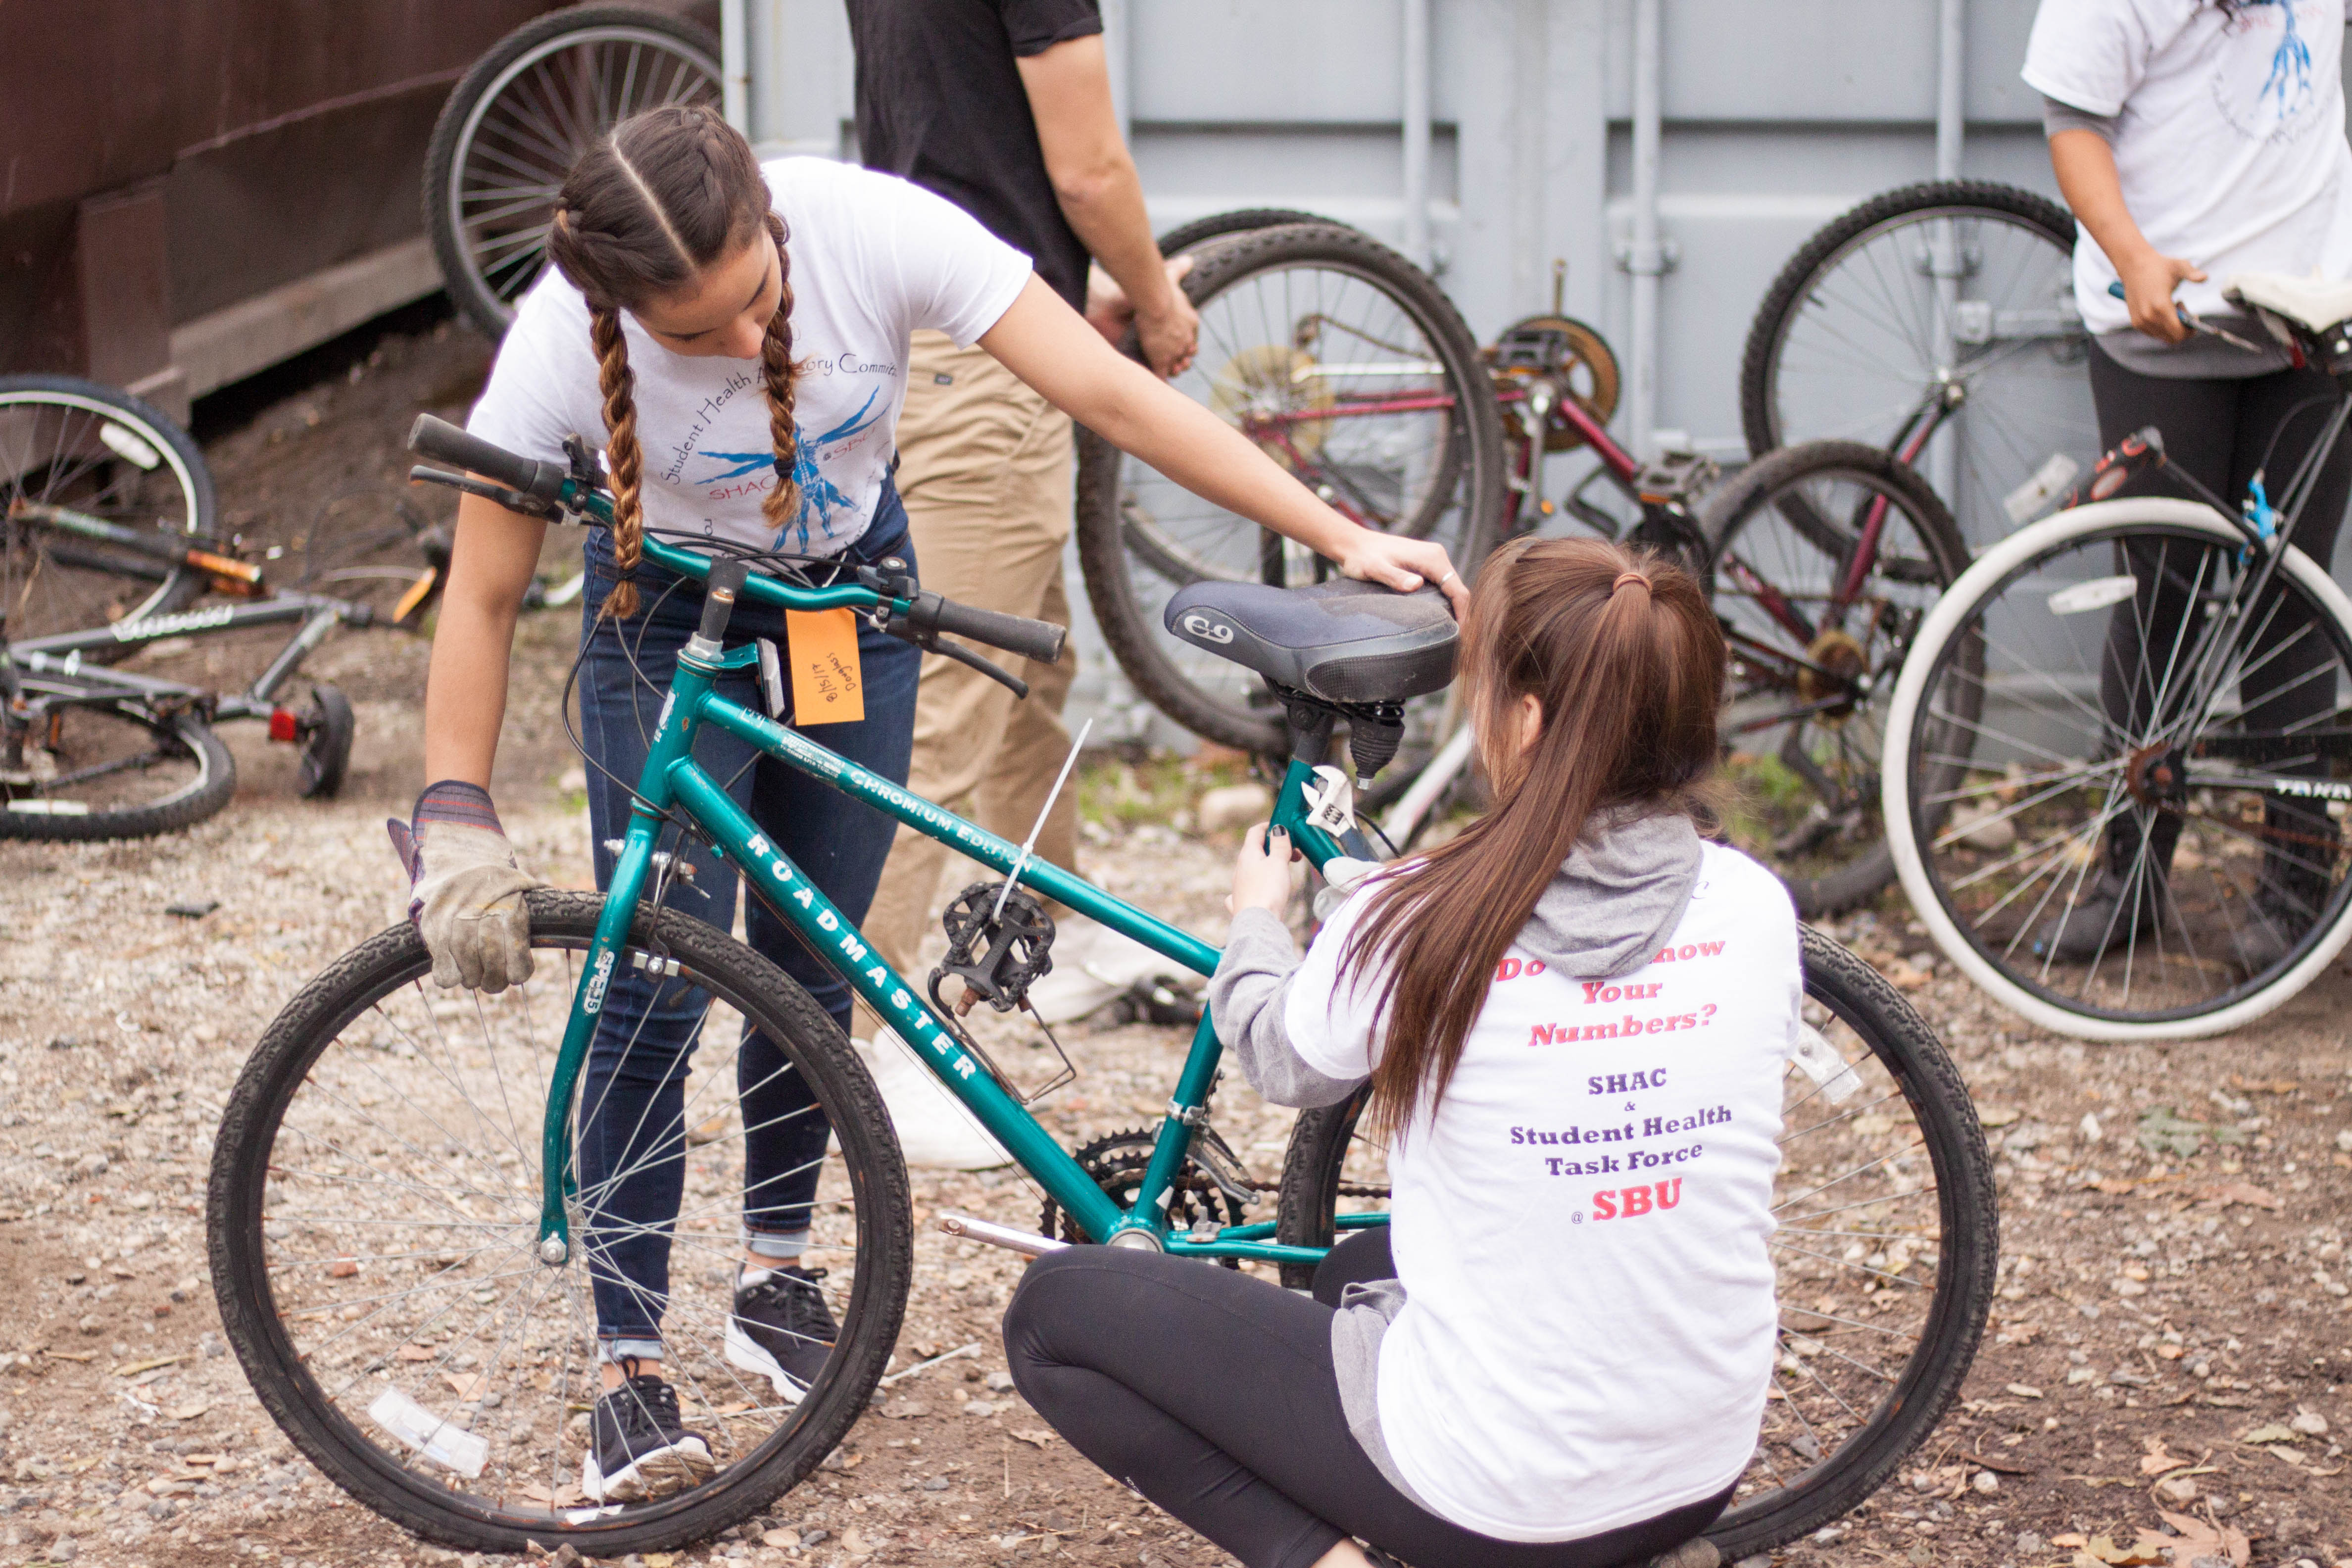 Bikes are collected through Pedals for Progress and donated to developing countries around the world.